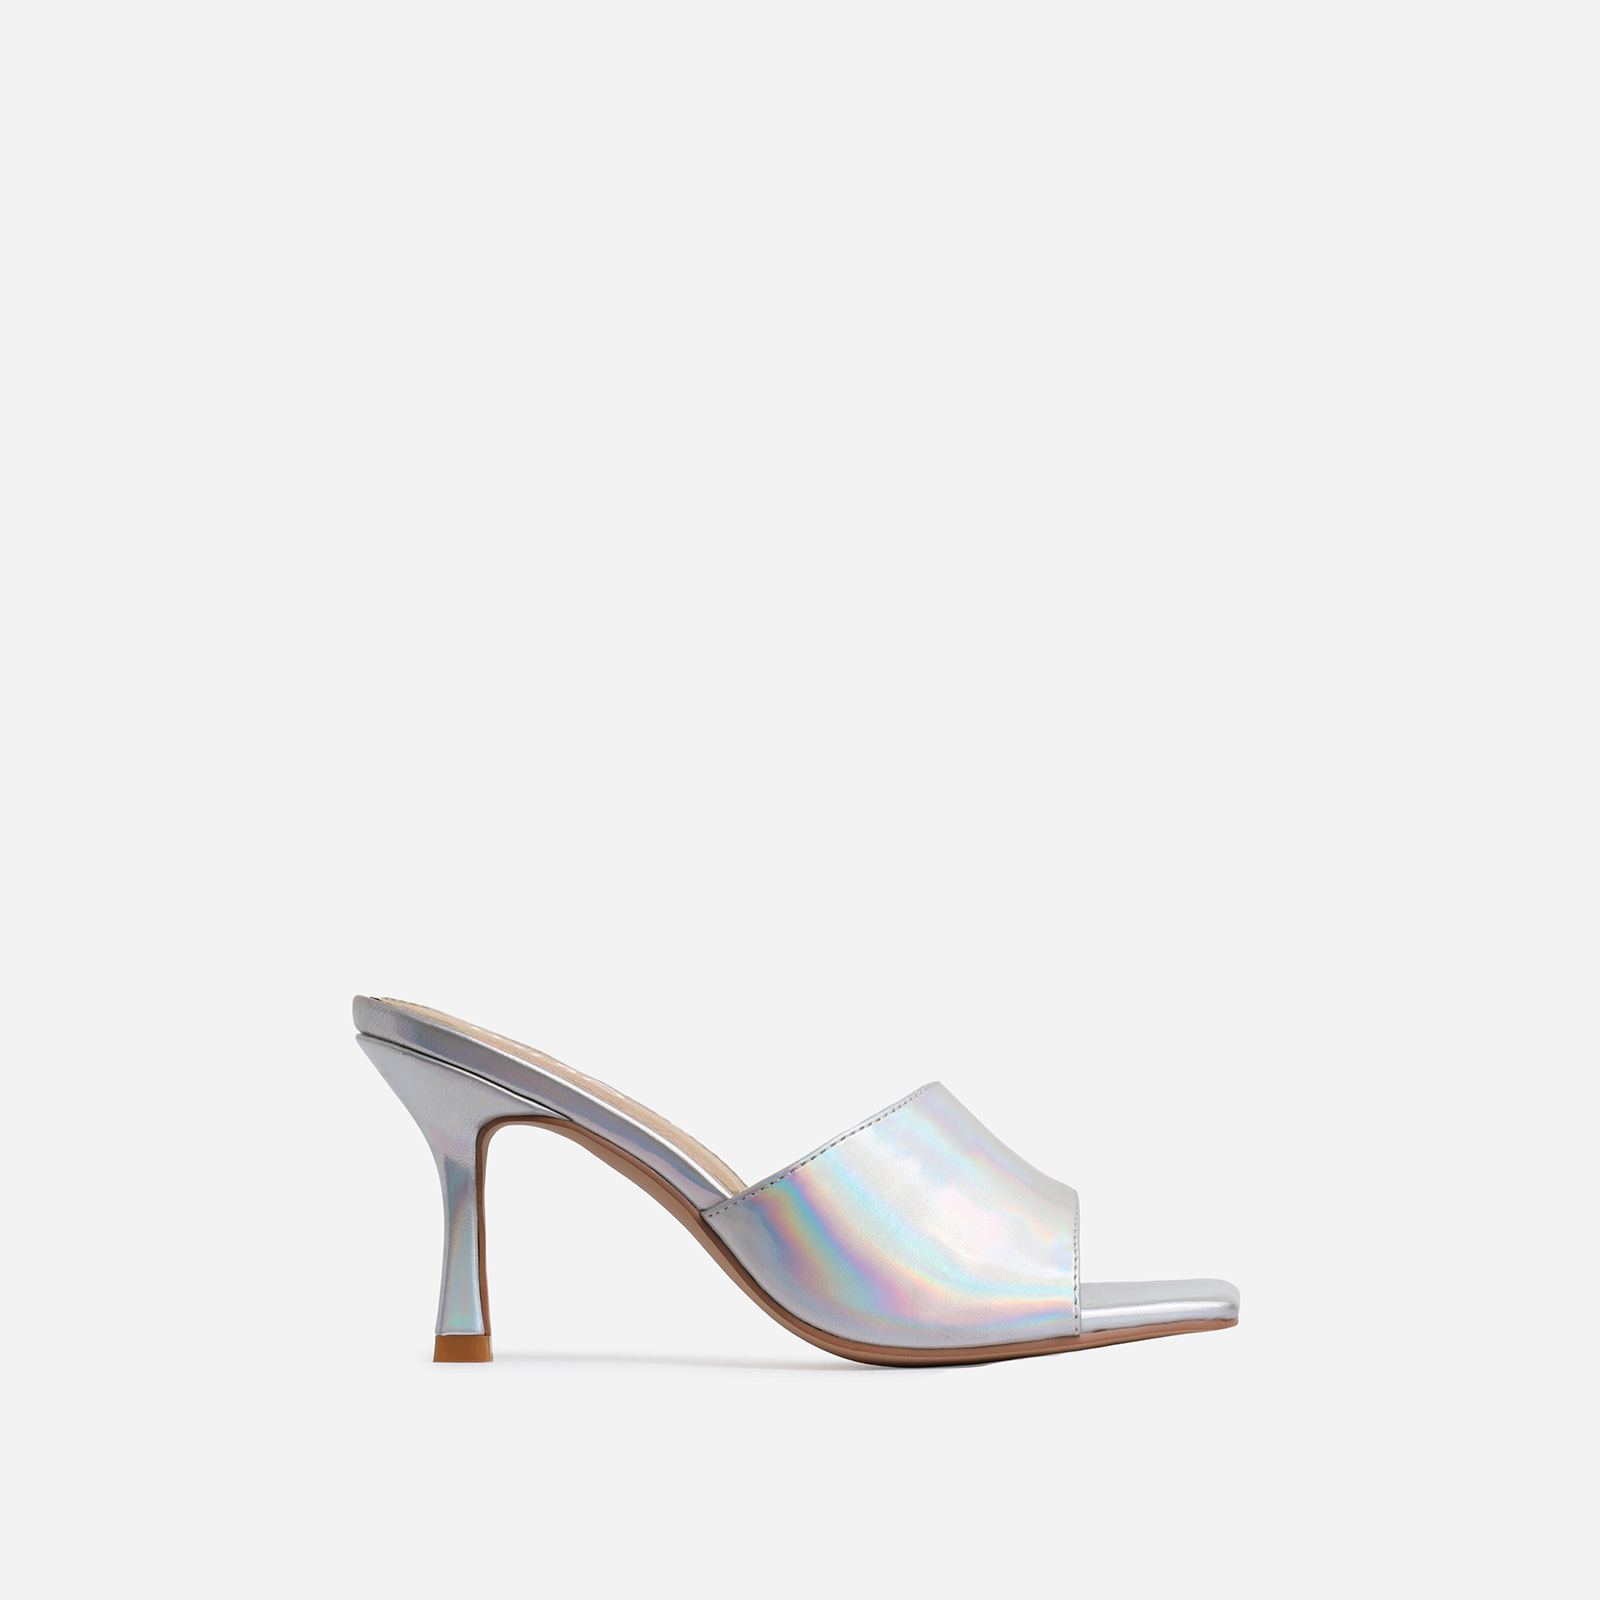 Hilton Square Peep Toe Kitten Heel Mule In Silver Holographic Faux Leather